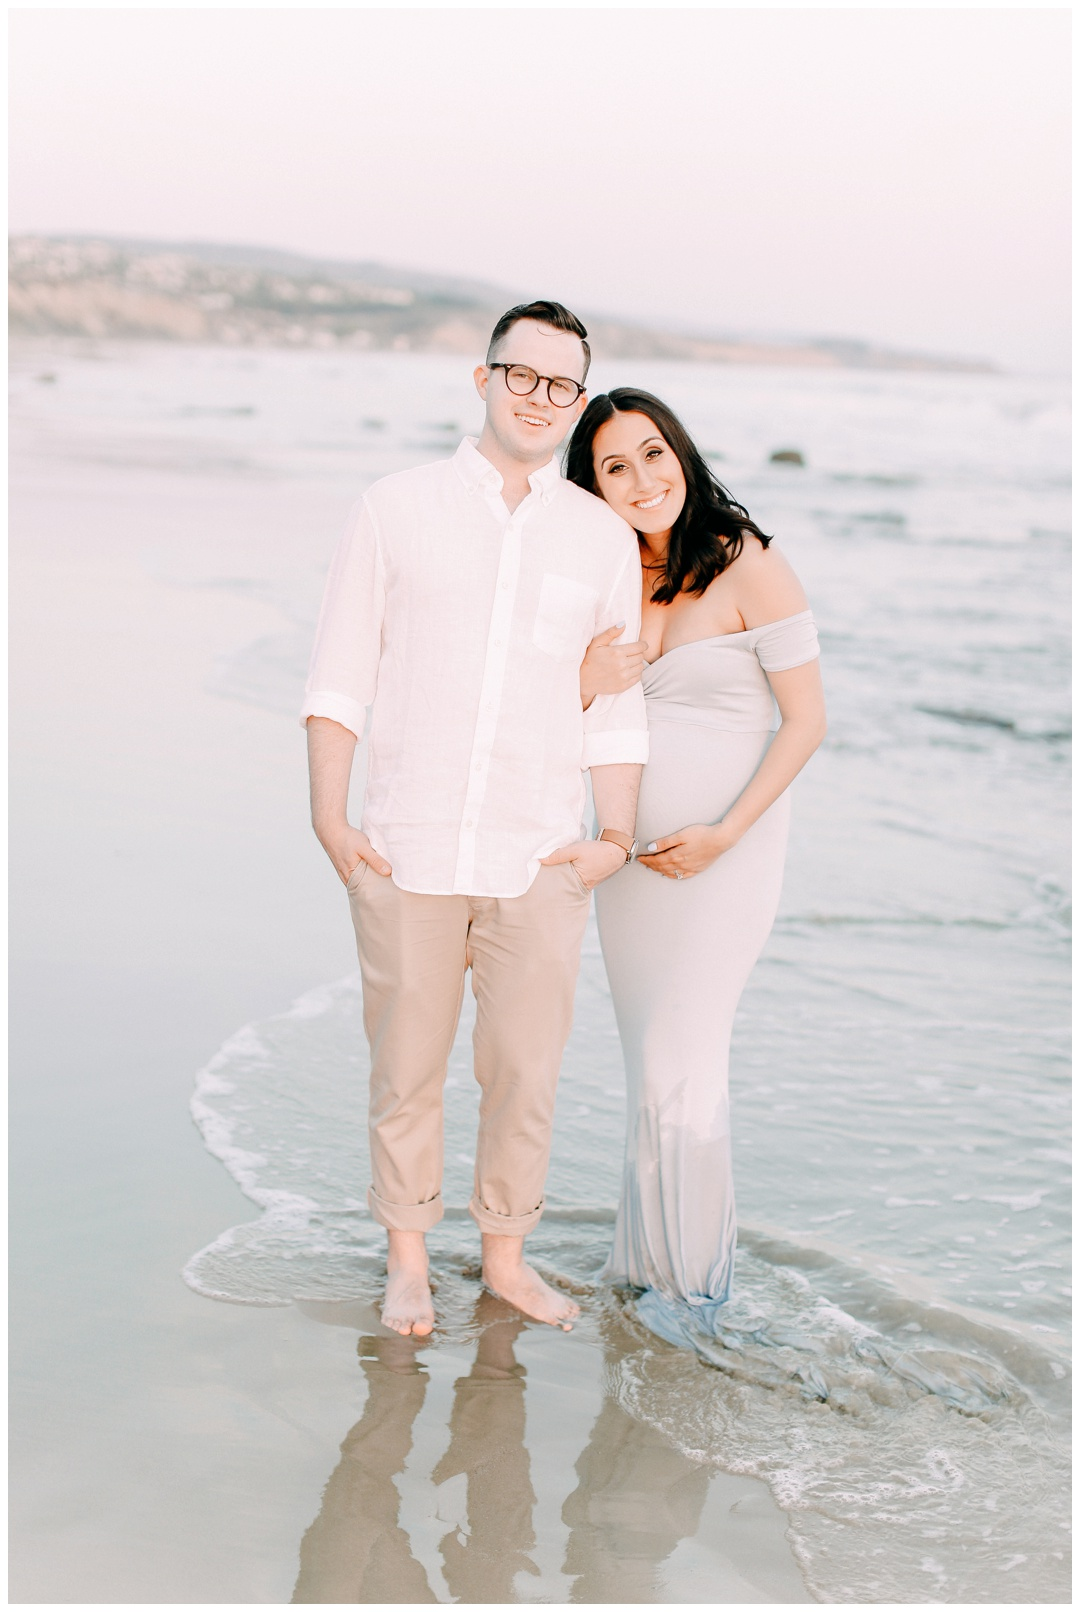 Newport_Beach_Maternity_Photographer_The_Merrill_Maternity_Session_Newport_Beach_Maternity_Photography_Orange_County_Photography_Cori_Kleckner_Photography_Orange_County_Beach_Photography_The_Ritz_Carlton_Laguna_Niguel_Resort_ Maternity_Session__1783.jpg